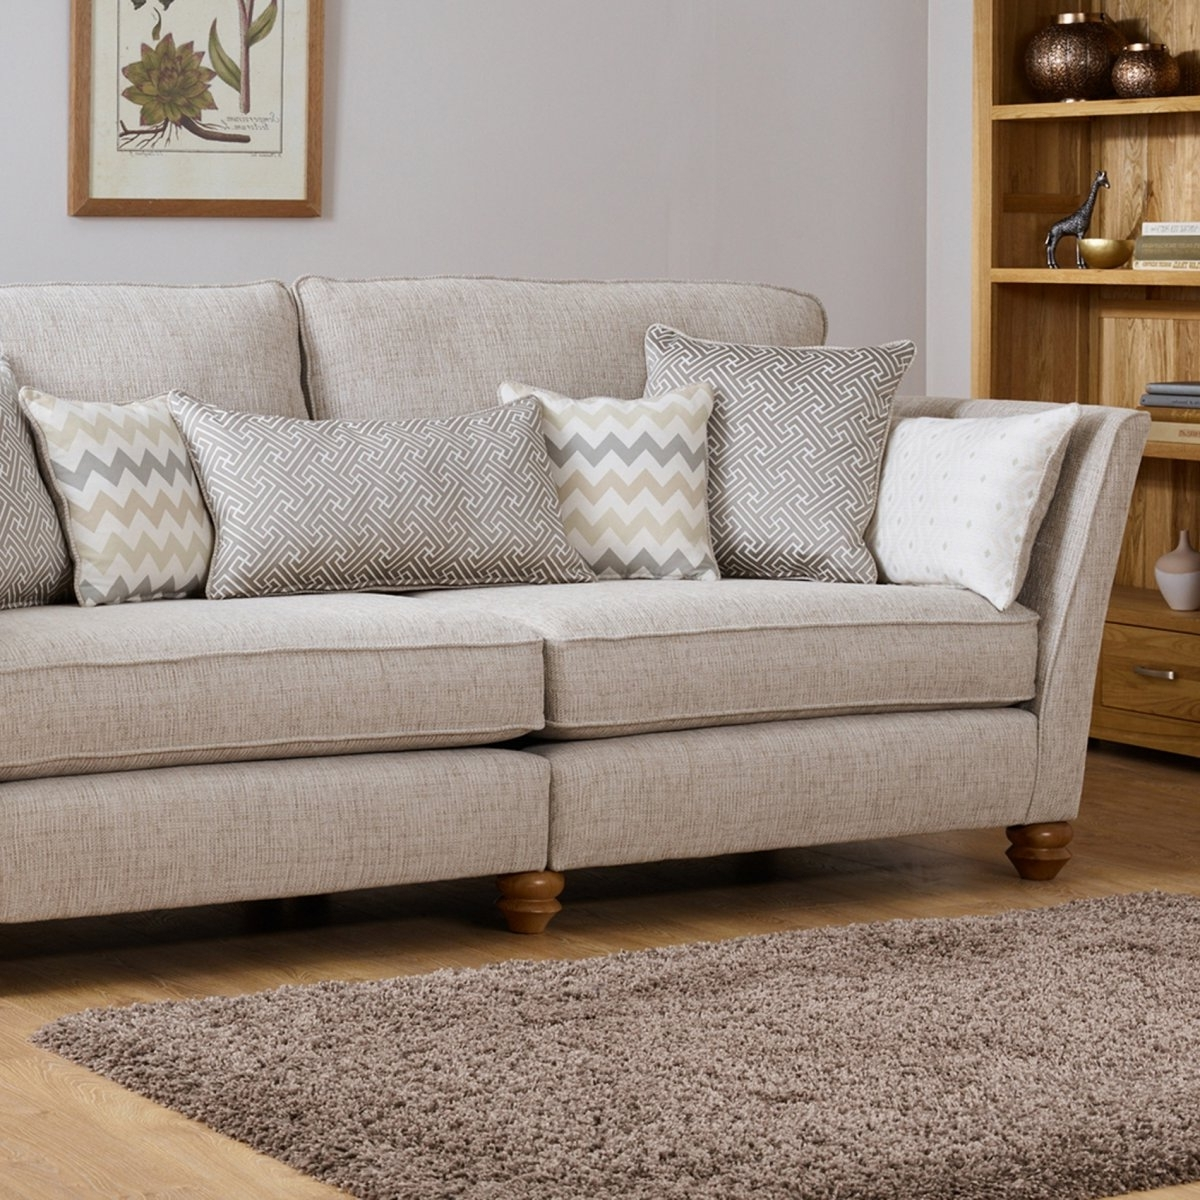 Favorite 4 Seater Sofas In Sofa : 3 Seater Sofa Littlewoods 3 Seater Yellow Sofa 3 Seater (View 14 of 20)